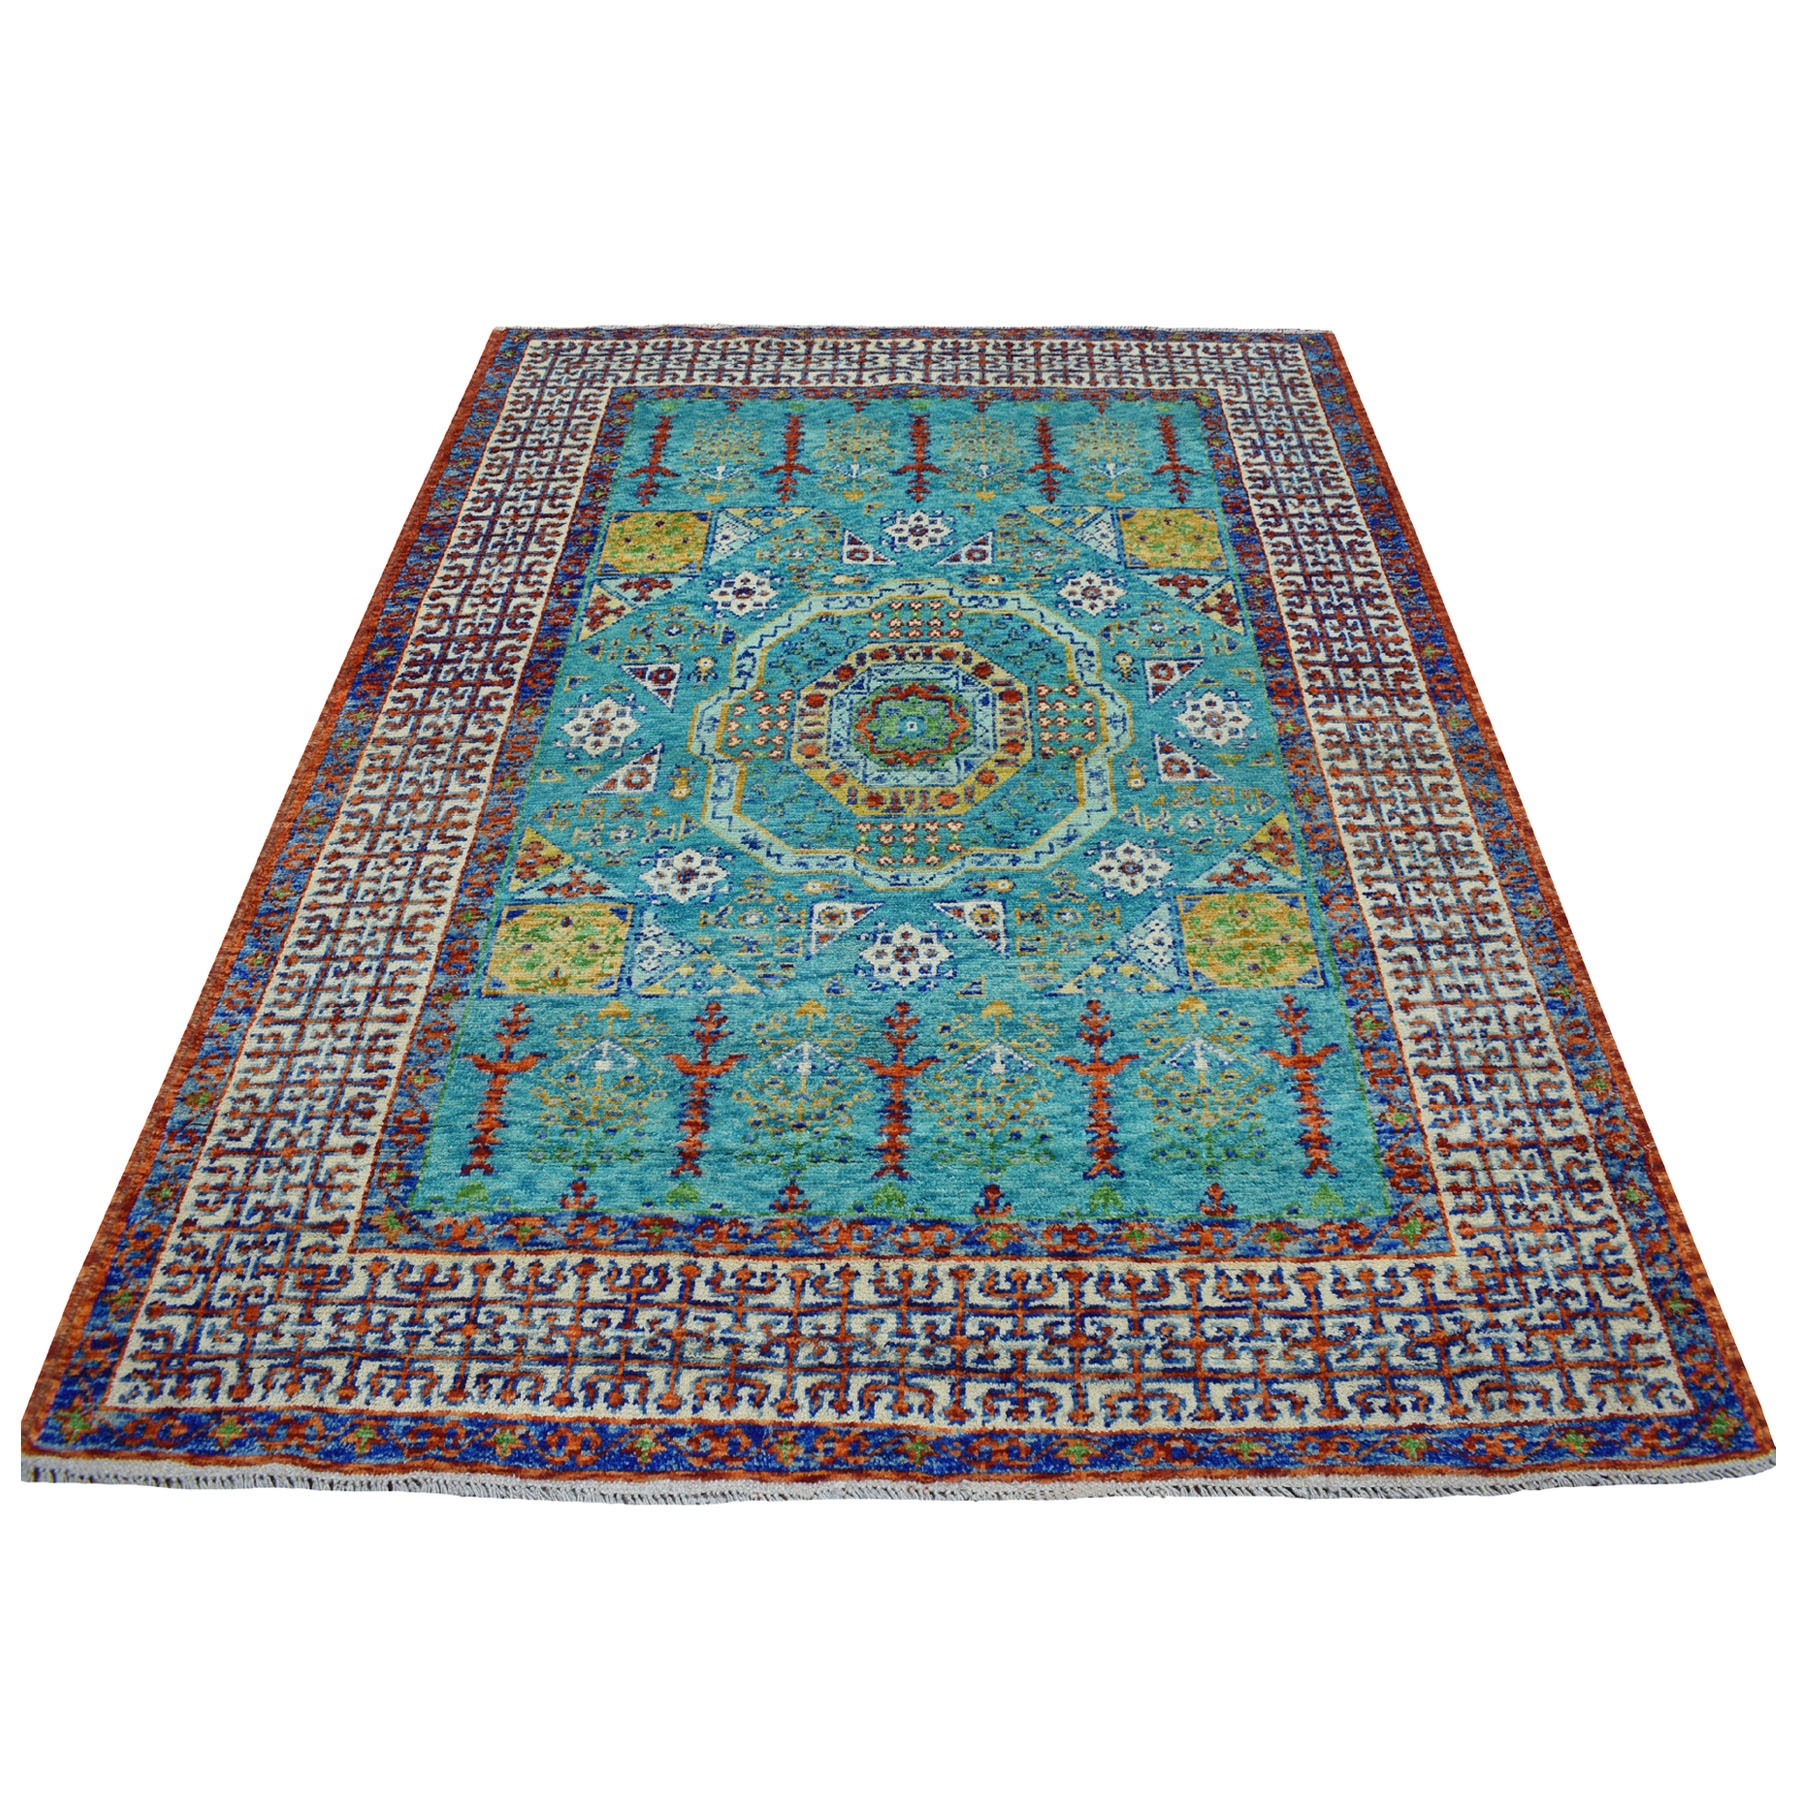 "6'x7'10"" Green Mamluk Design Colorful Afghan Baluch Hand Knotted Pure Wool Oriental Rug"